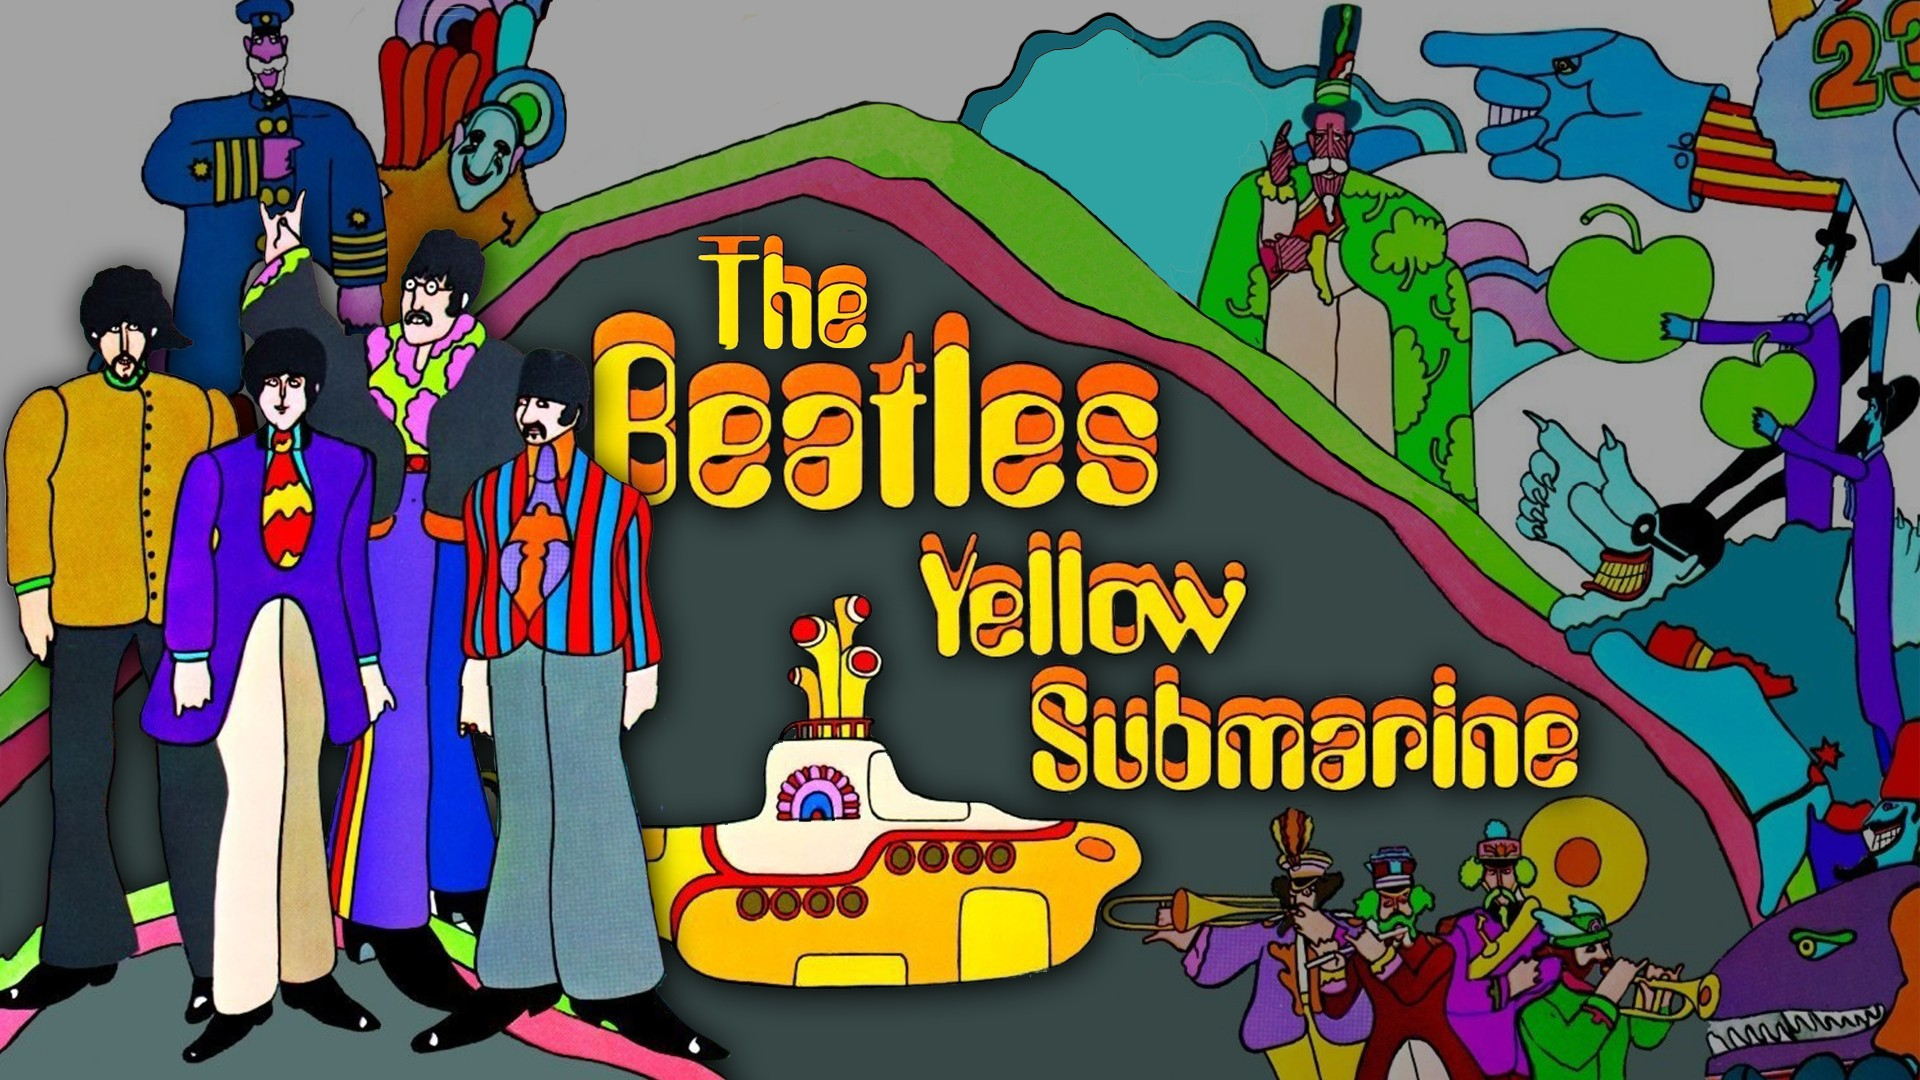 Beatles Yellow Submarine Wallpaper - WallpaperSafari